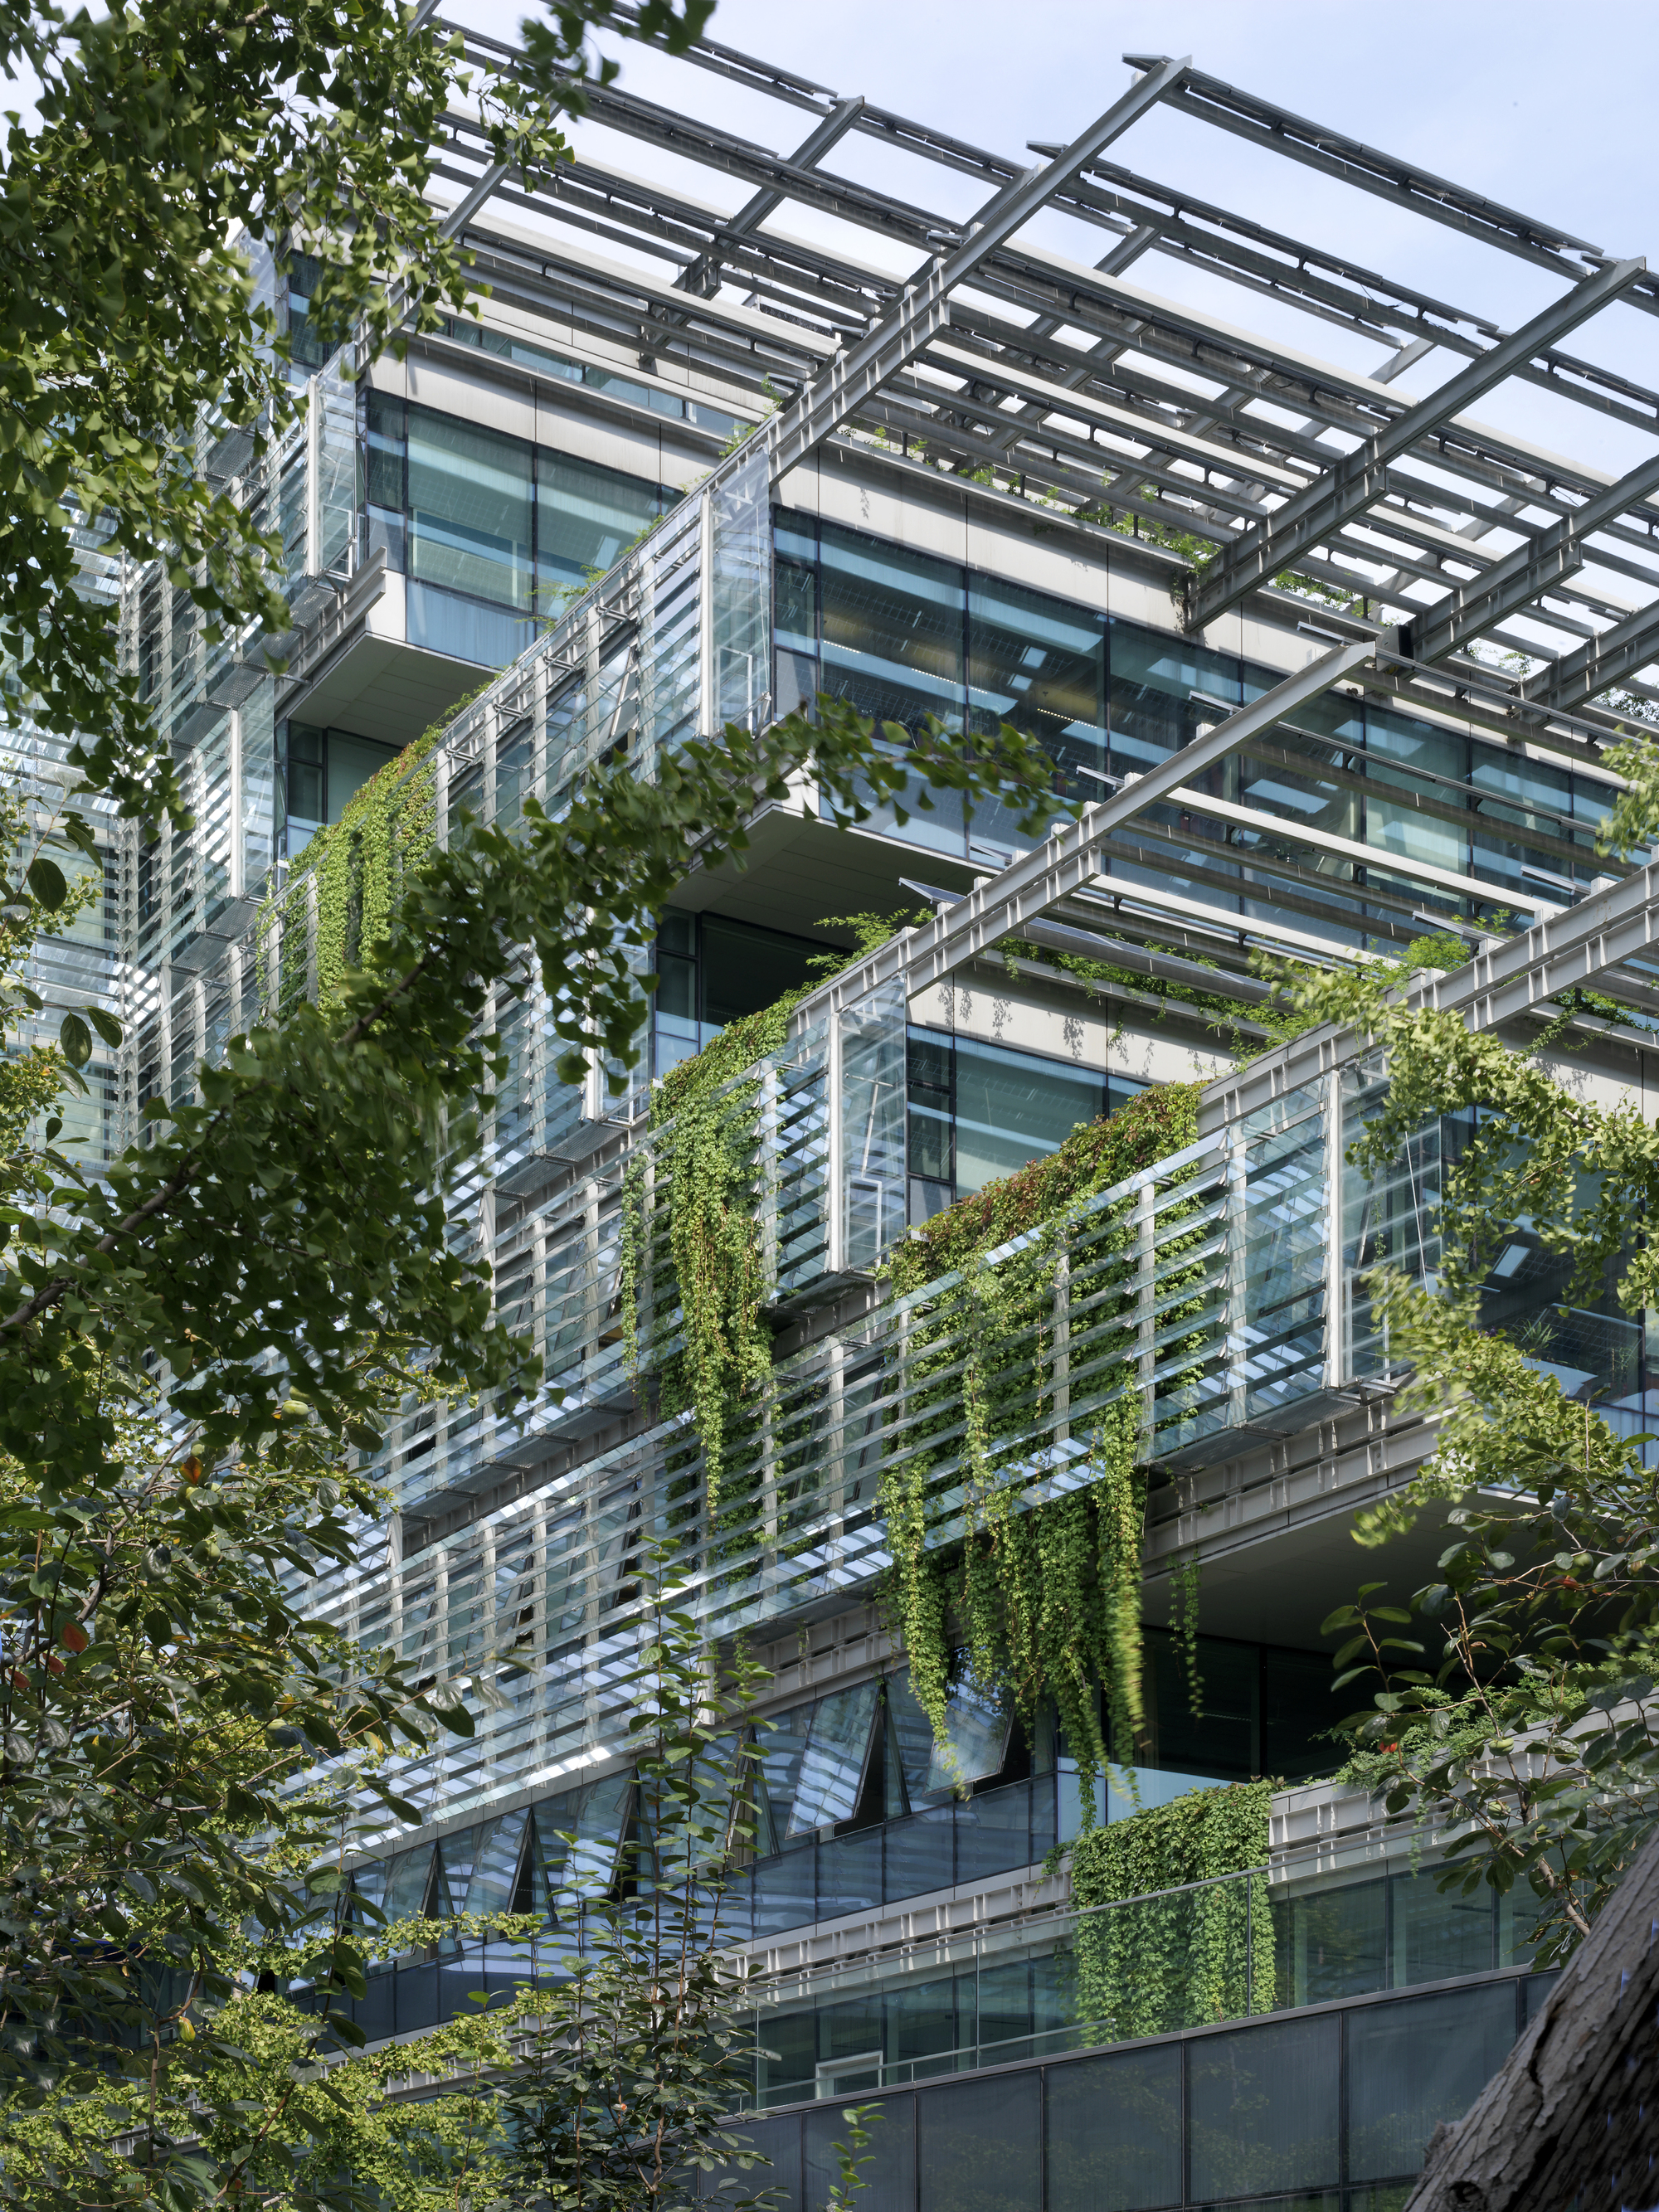 Gallery of sino italian ecological and energy efficient for Cucinella architects